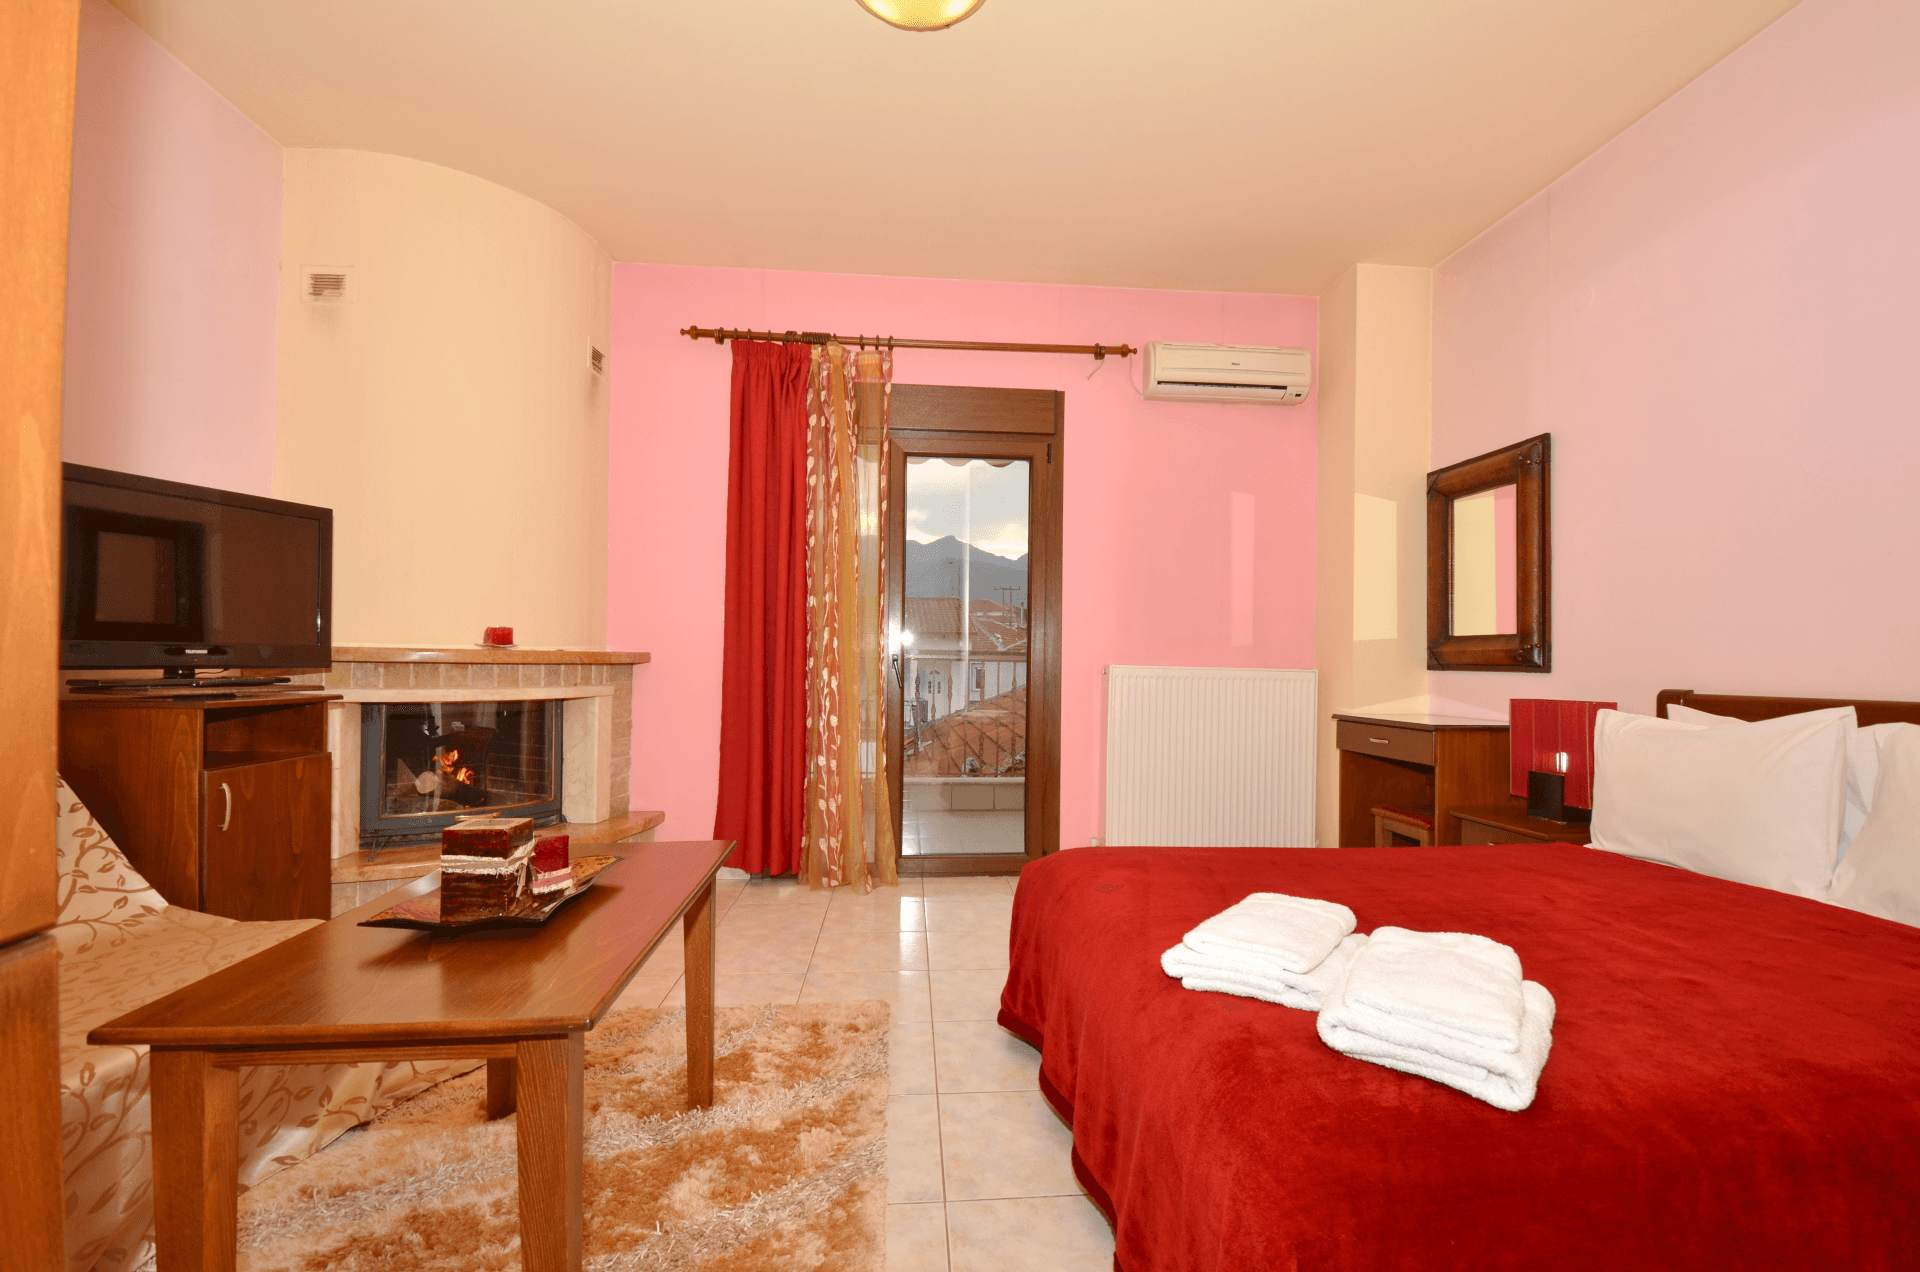 Room with fireplace in Loutraki Pella